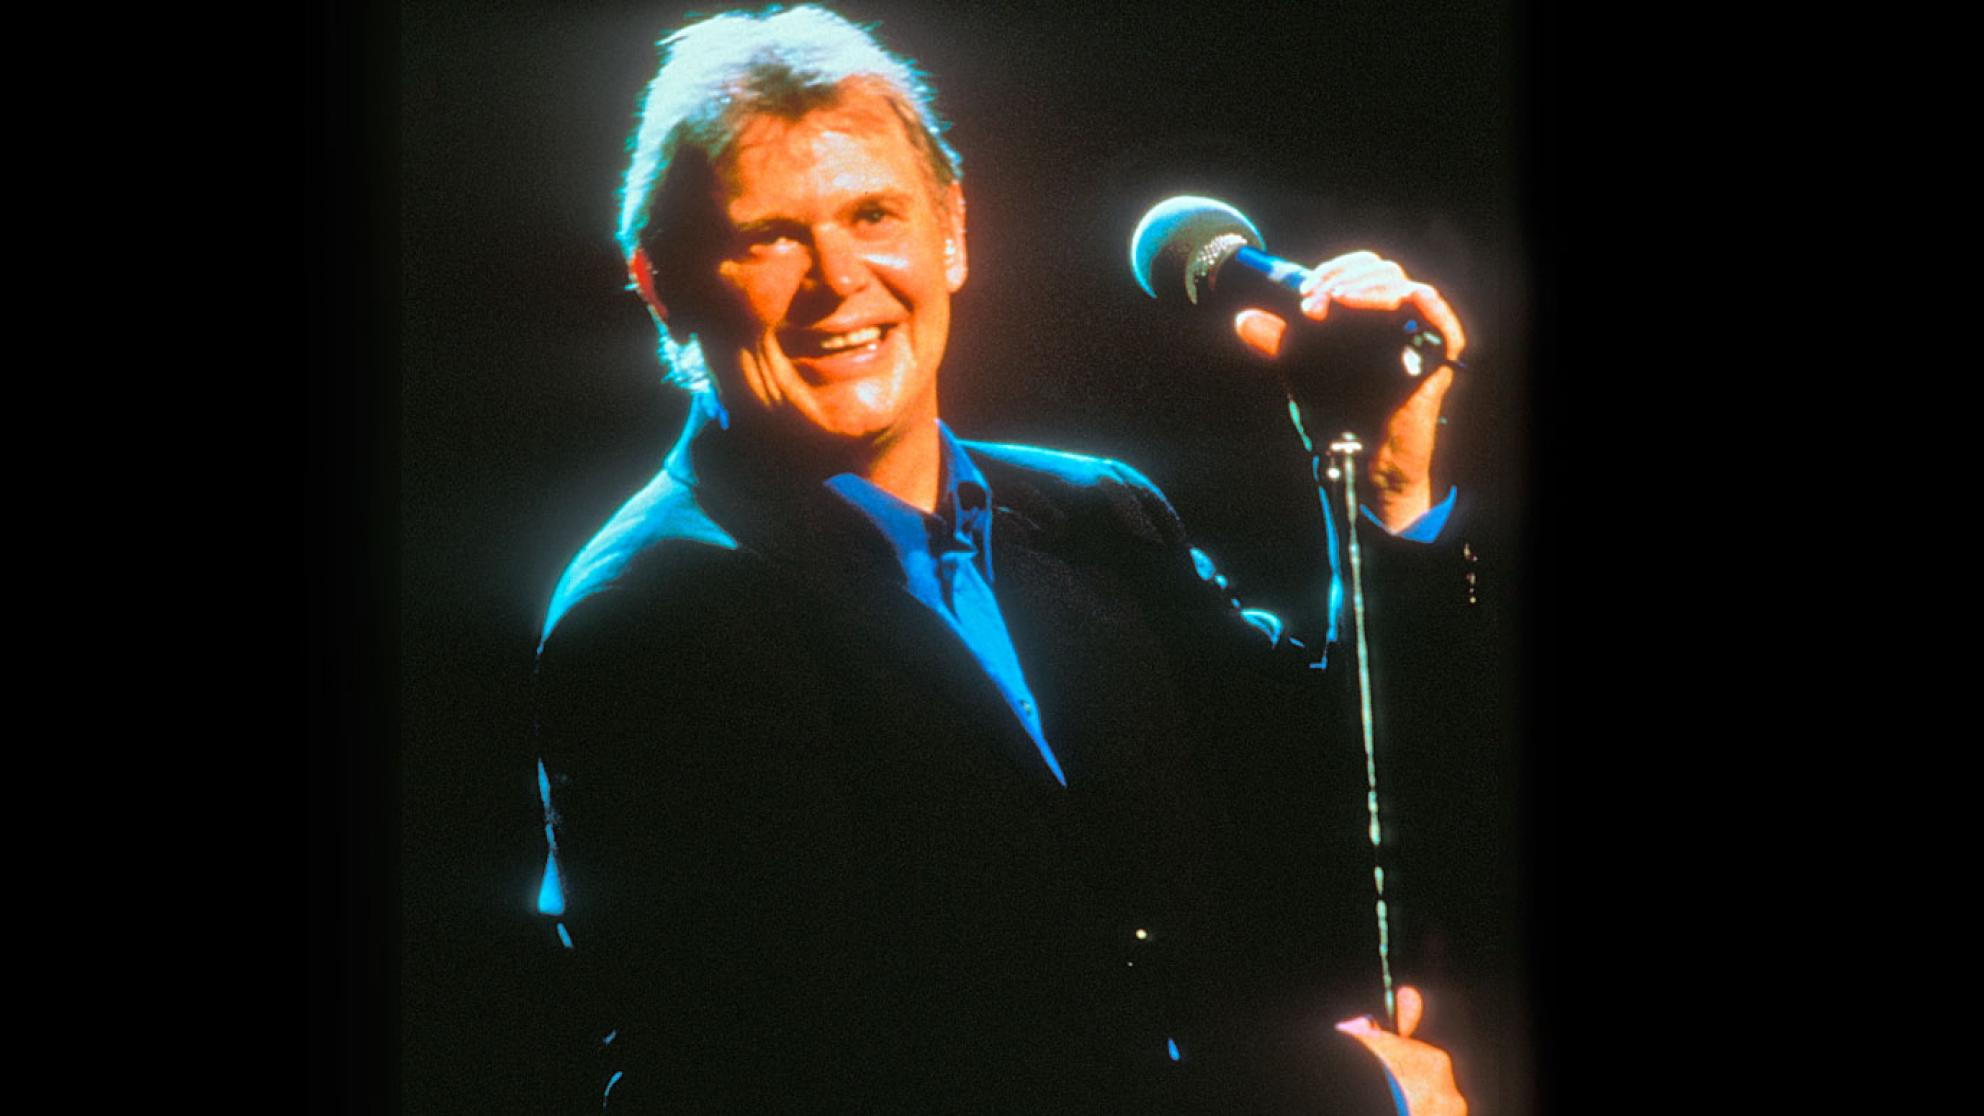 Singer John Farnham, circa late 1990s or early 2000s, pictured from the waist up wearing a black jacket and blue collared shirt, standing on a stage and holding on to a microphone stand. He's smiling at the camera.